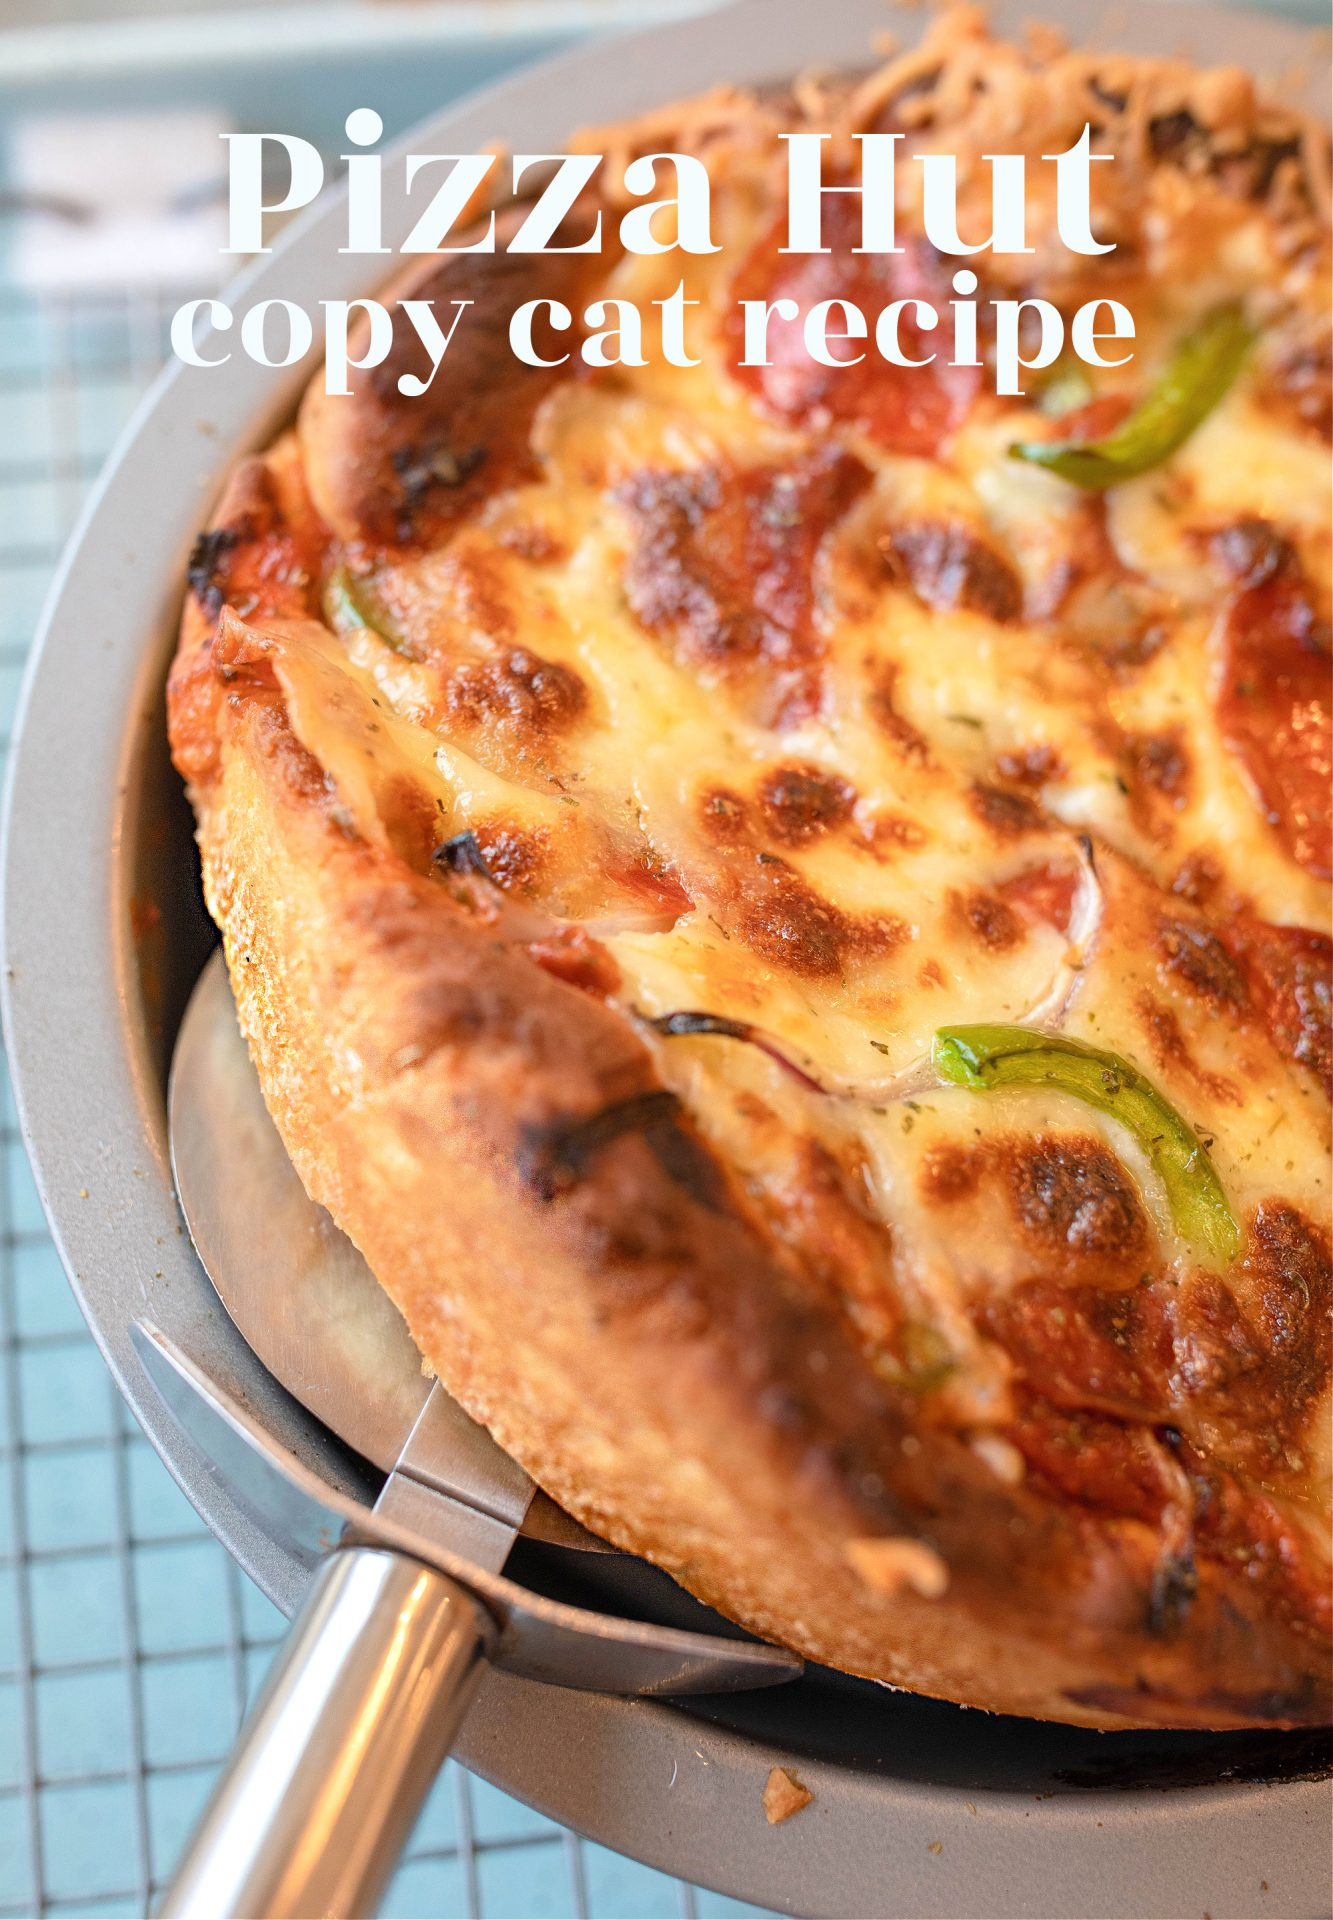 Pizza Hut, copy cat recipe, copy cat Pizza Hut pan pizza, the best pizza recipe, homemade pizza, delicious, the best pizza, pizza sauce, pepperoni, food, pizza is life, Pizza Hut recipe, Pizza Hut,